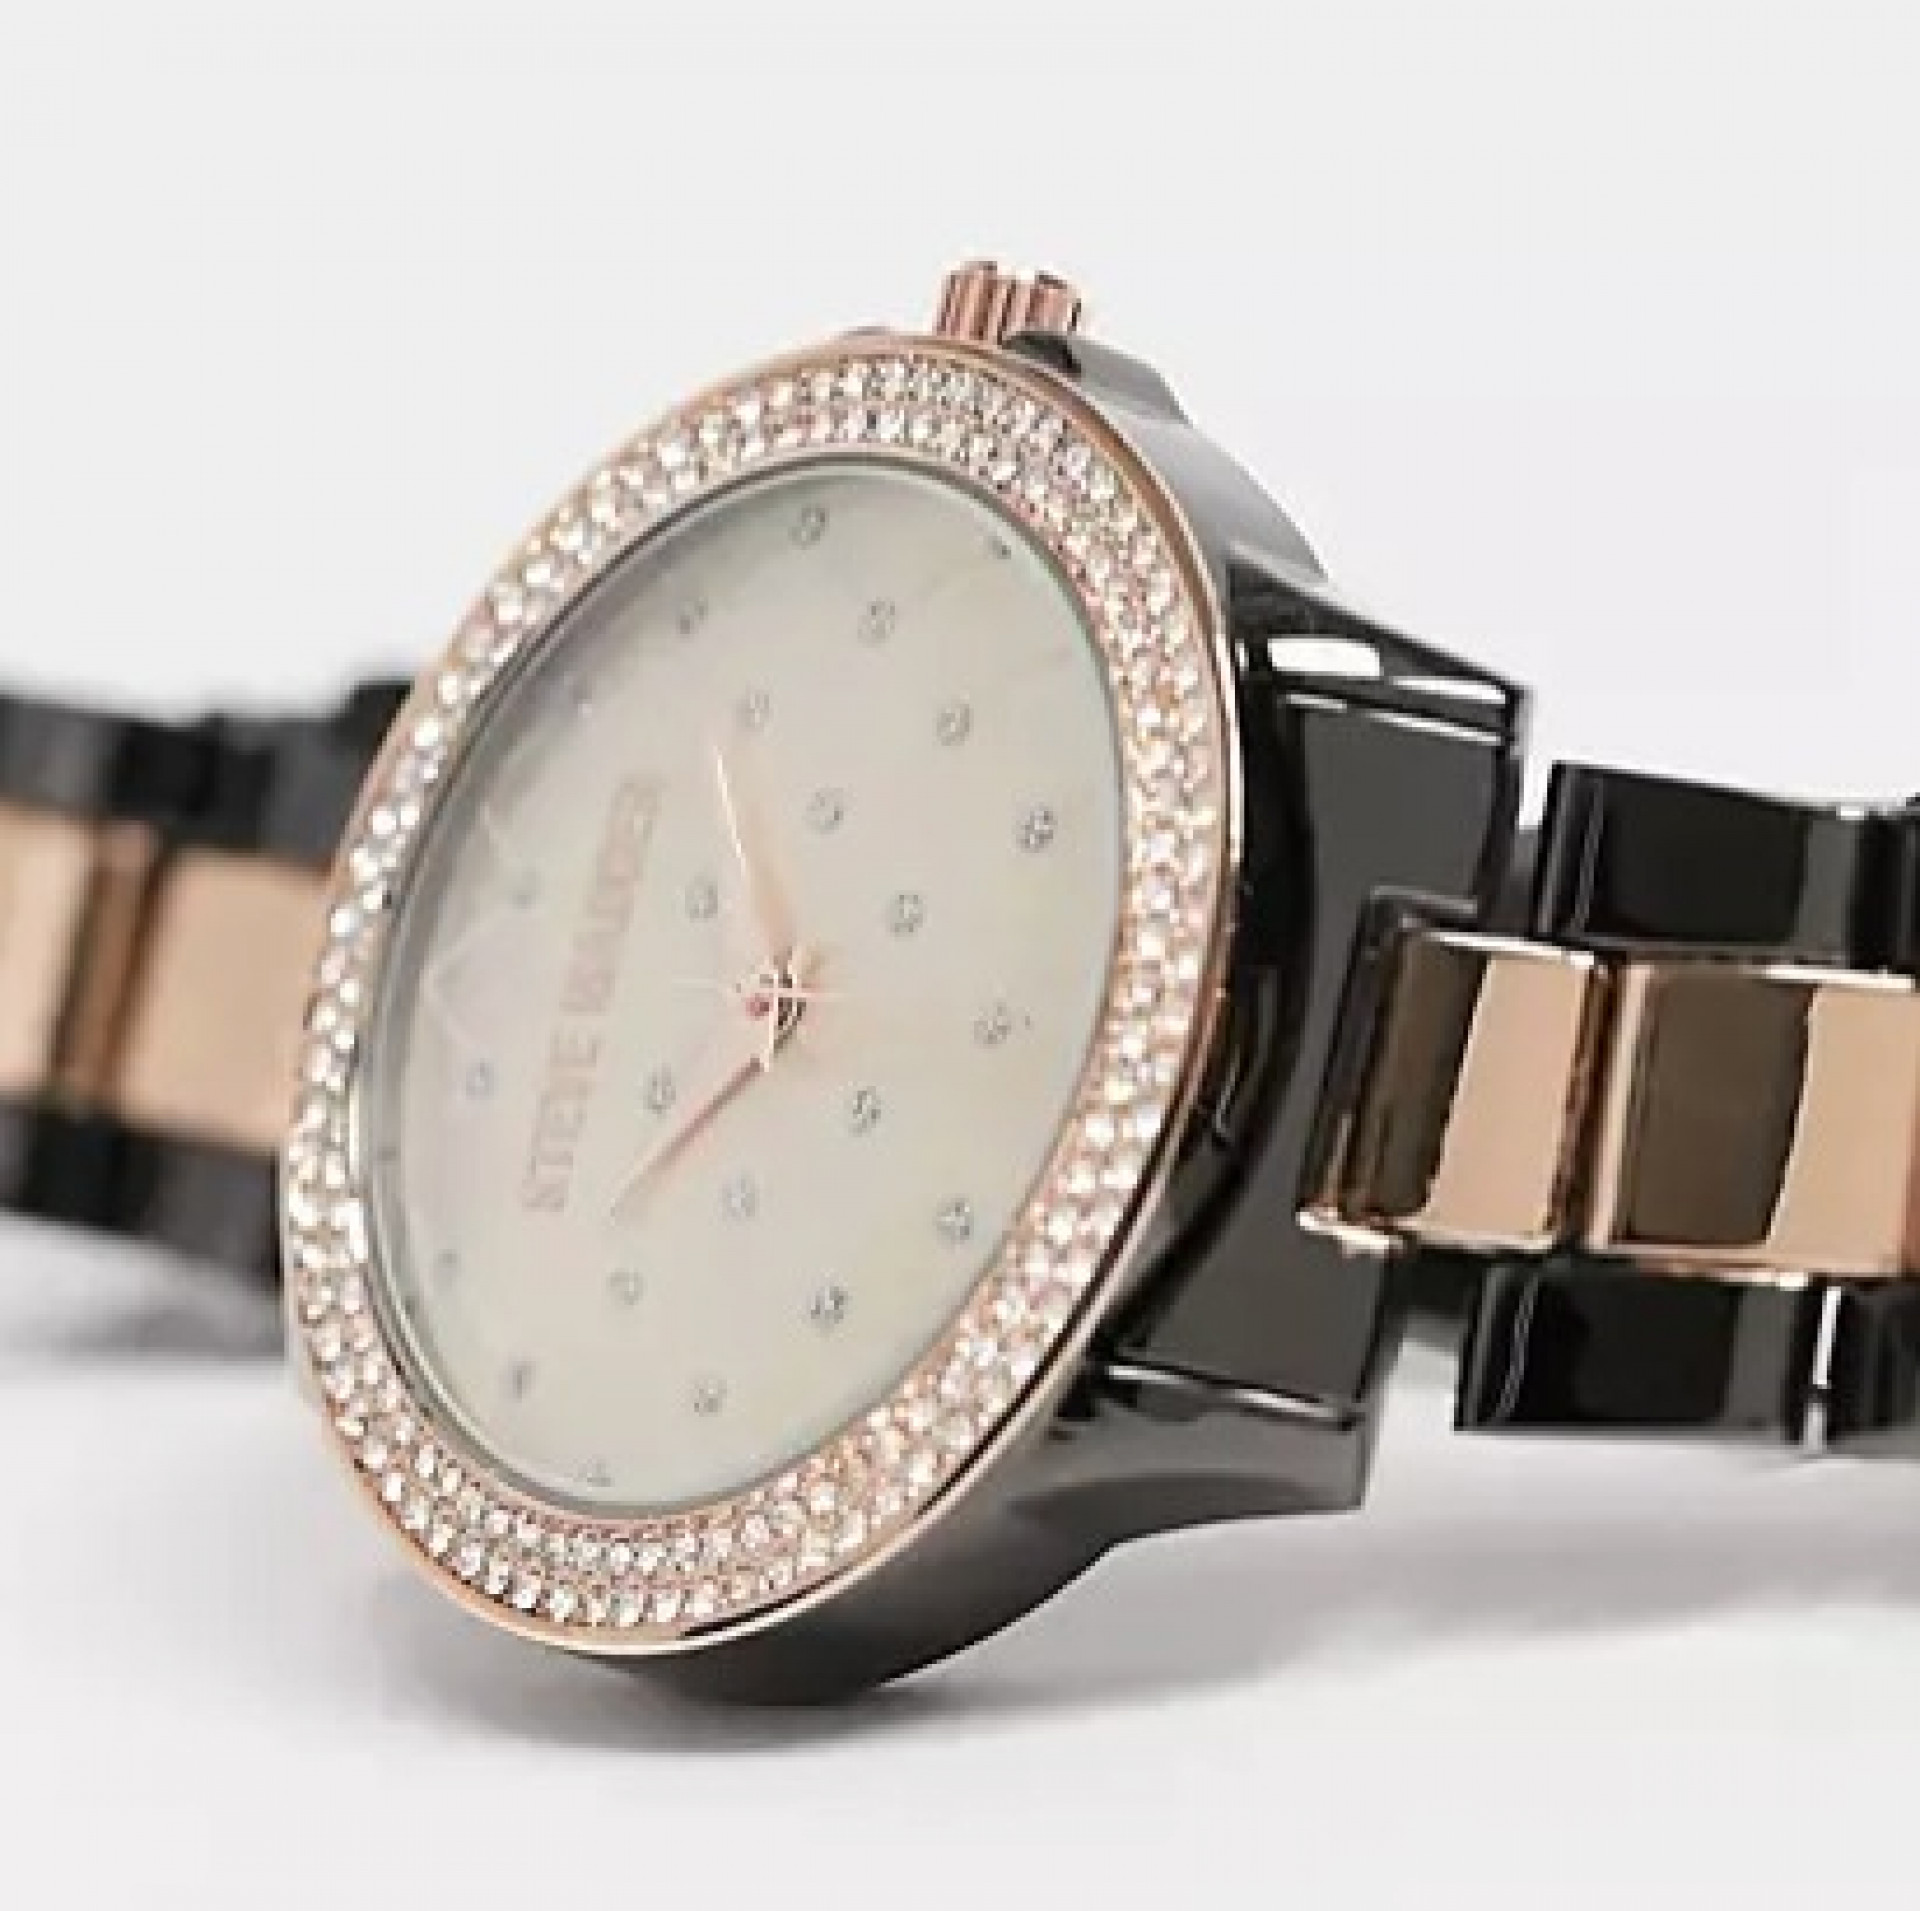 Steve Madden watch with quilted dial and stones in rose gold and black